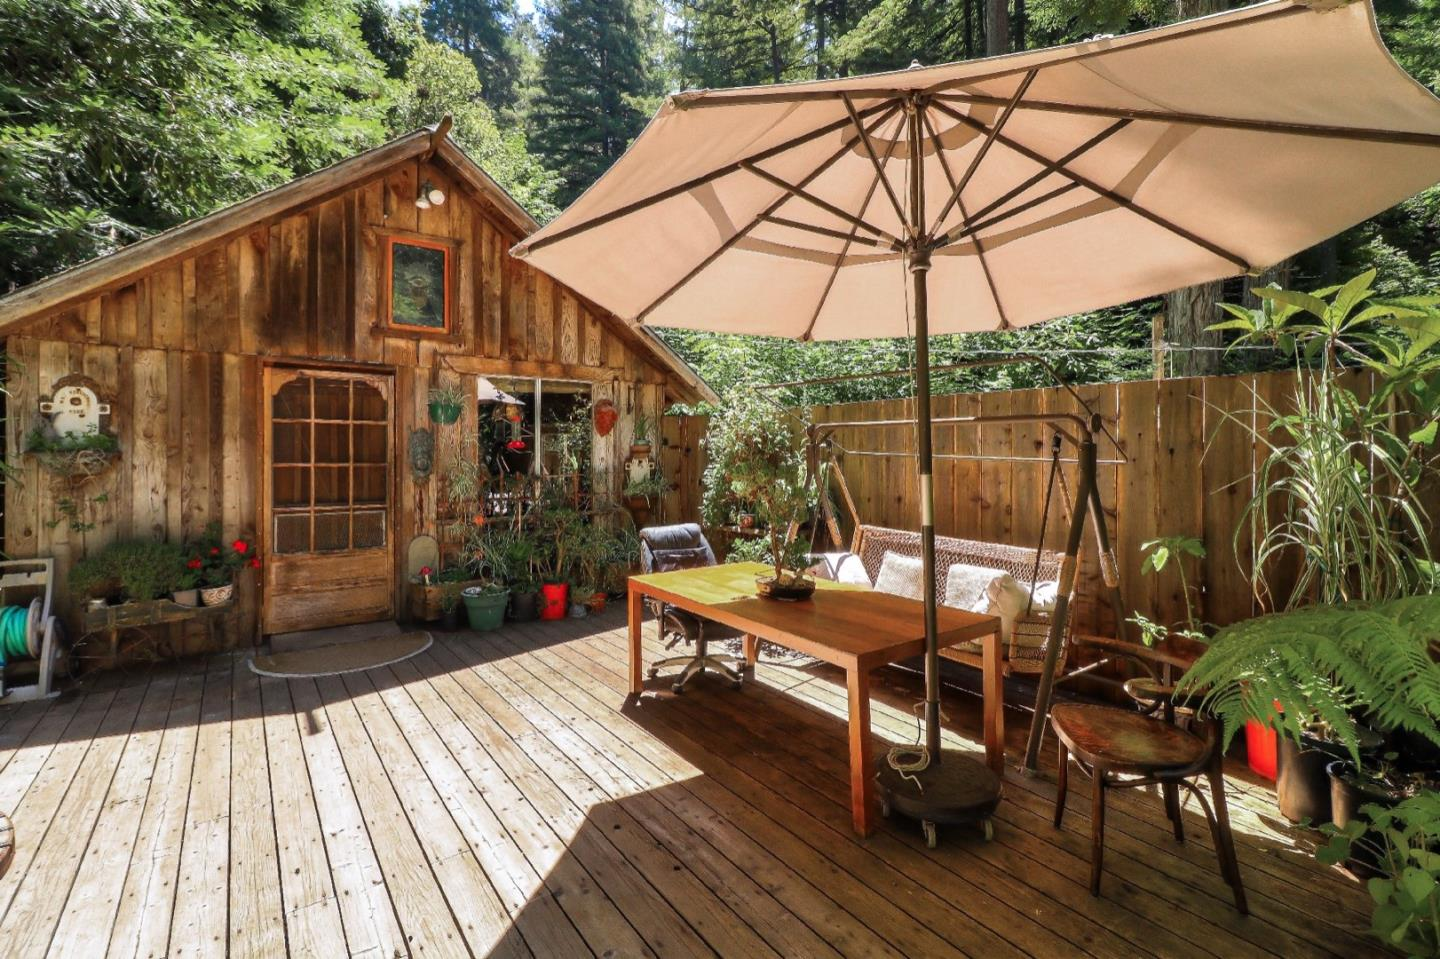 A private and peaceful sanctuary with lots of sunshine and ample gardening space nestled amongst the redwoods. The property was just appraised in August of 2019 for $397,000. Enjoy the perfect blend of an indoor and outdoor lifestyle - the main living space flows right out to the massive deck with views of the pristine babbling creek and forest down below. Connect with nature by watching and listening to the sounds of the year-round flowing creek, multiple species of birds, dragonflies, butterflies, and ladybugs. End your day by climbing into the hot tub and watch the moon traverse the sky between the trees. In addition to the house, there is a workshop space with running water and electricity. High-speed internet is available at the property. This home is located approximately 8 minutes up the road from the famous Corralitos market.